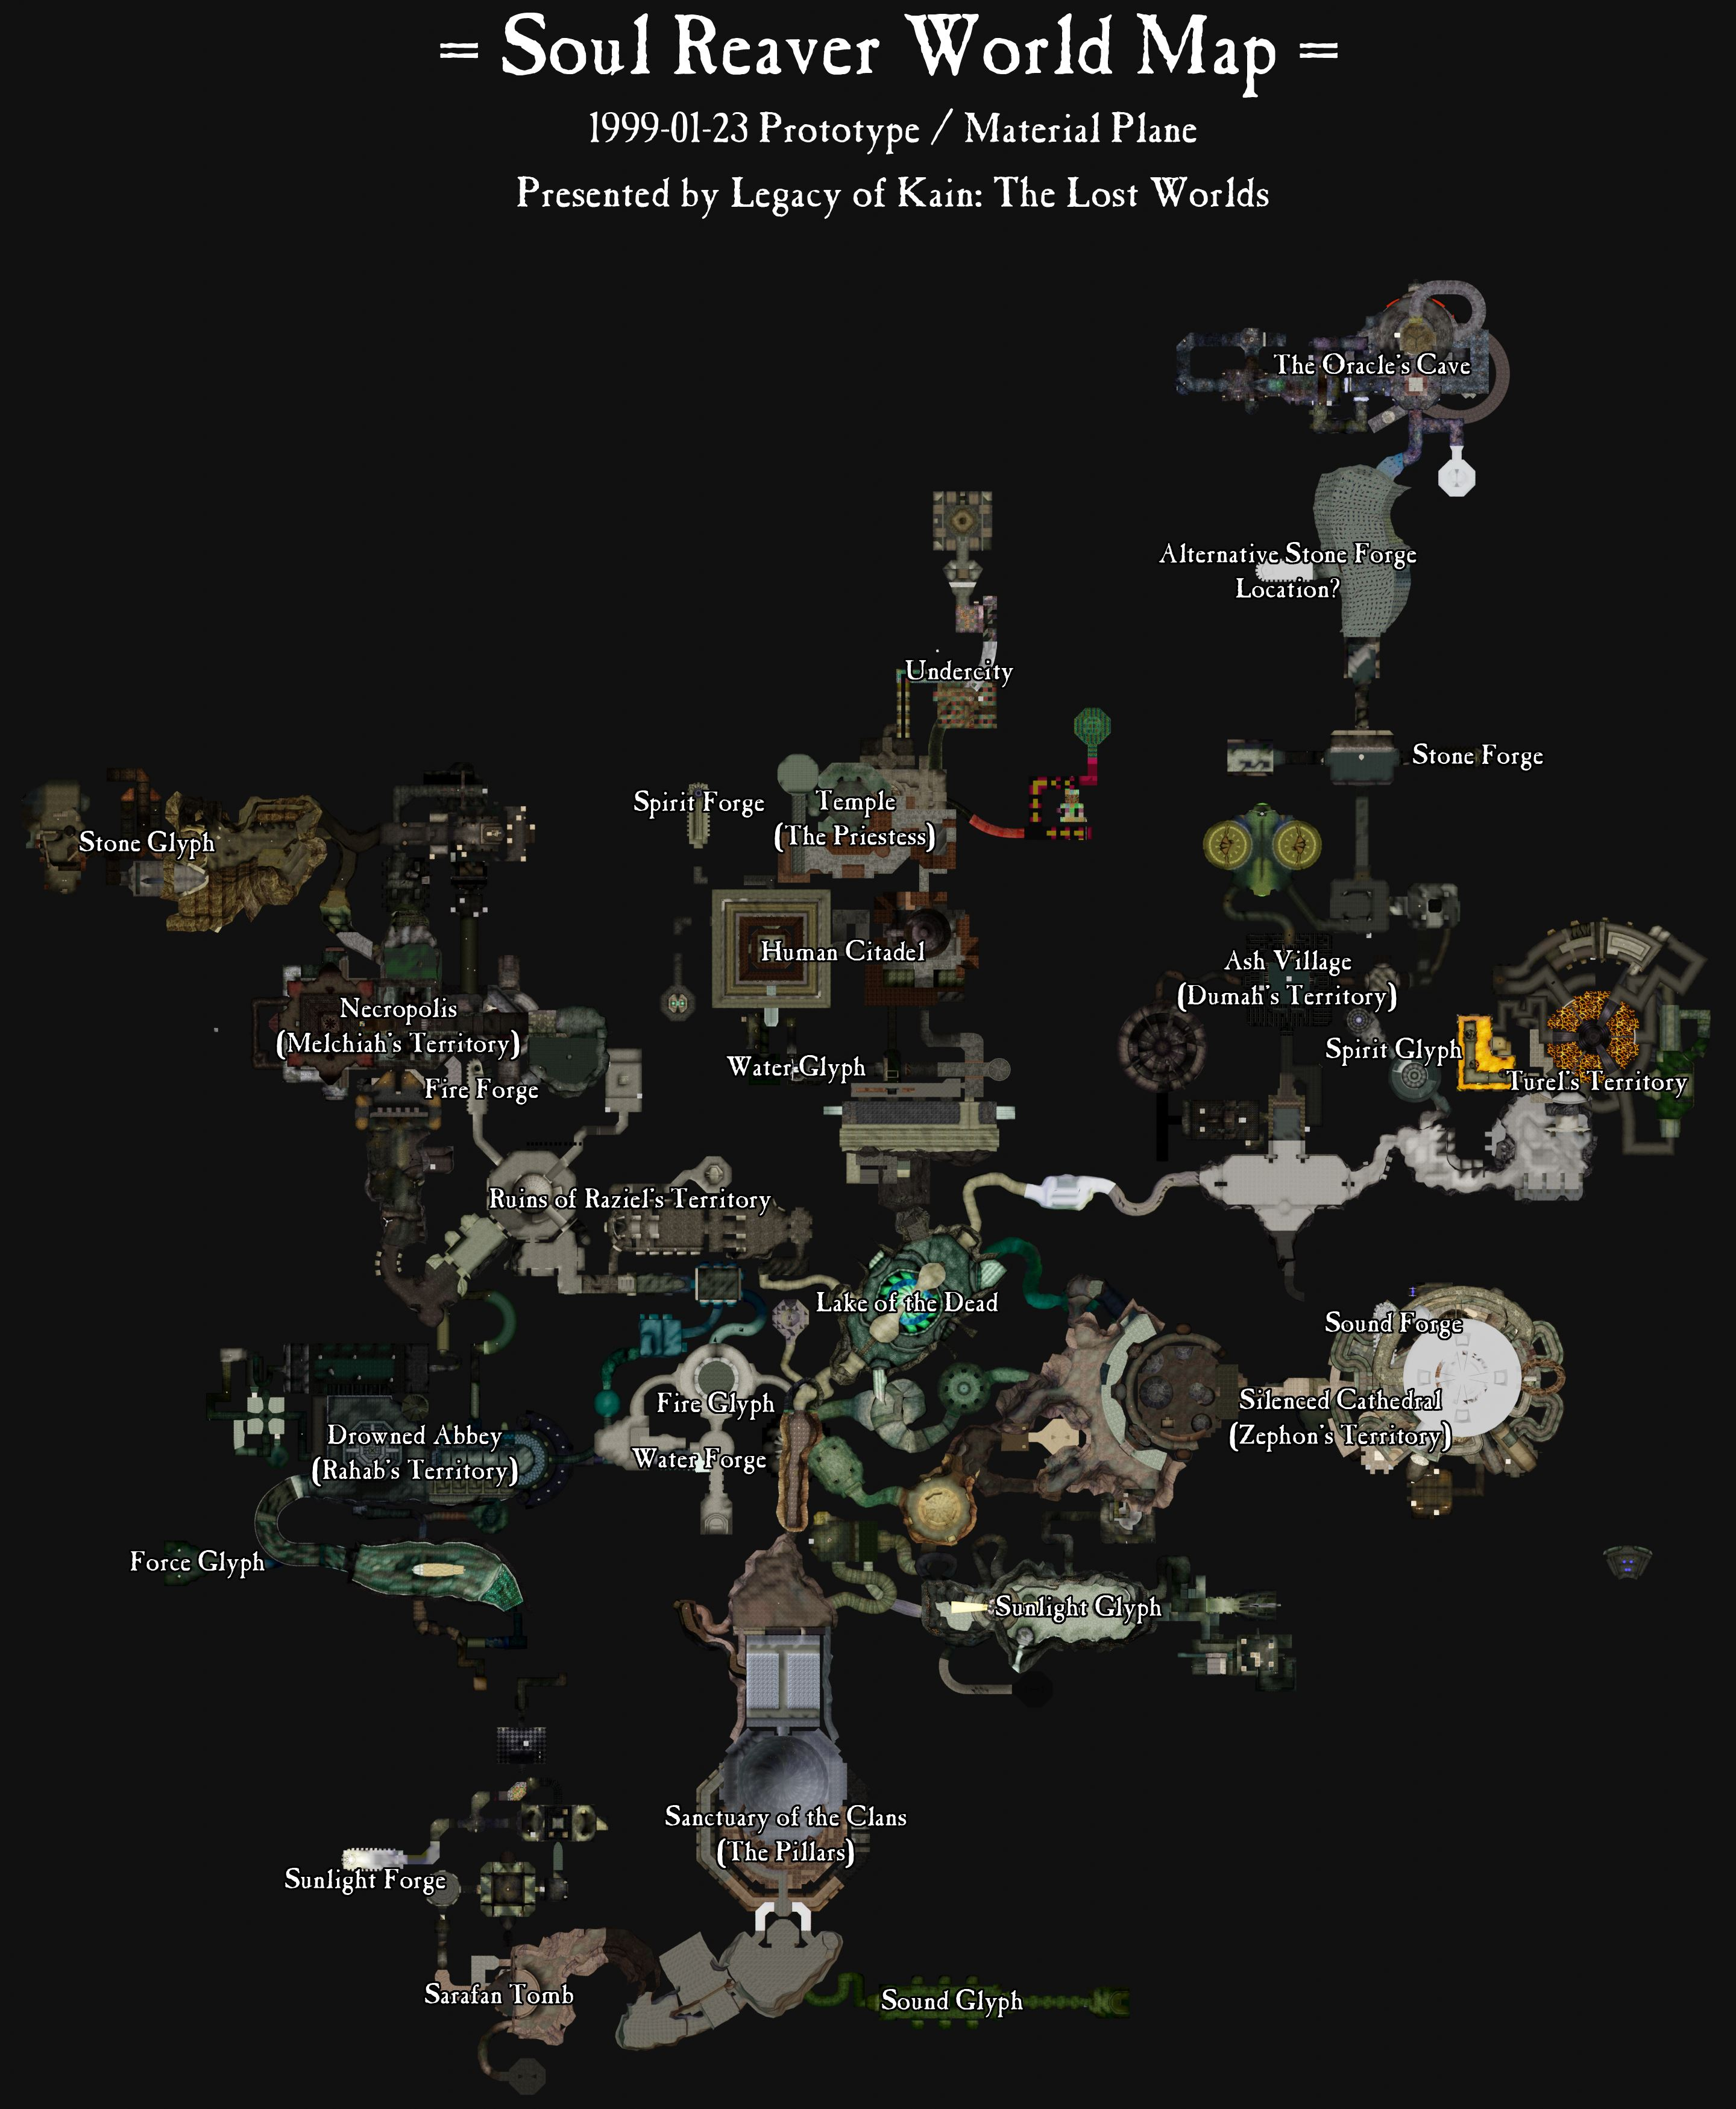 World Map Evolution-01-Maps-Soul Reaver World Map-1999-01-23-Material-Annotated.jpg